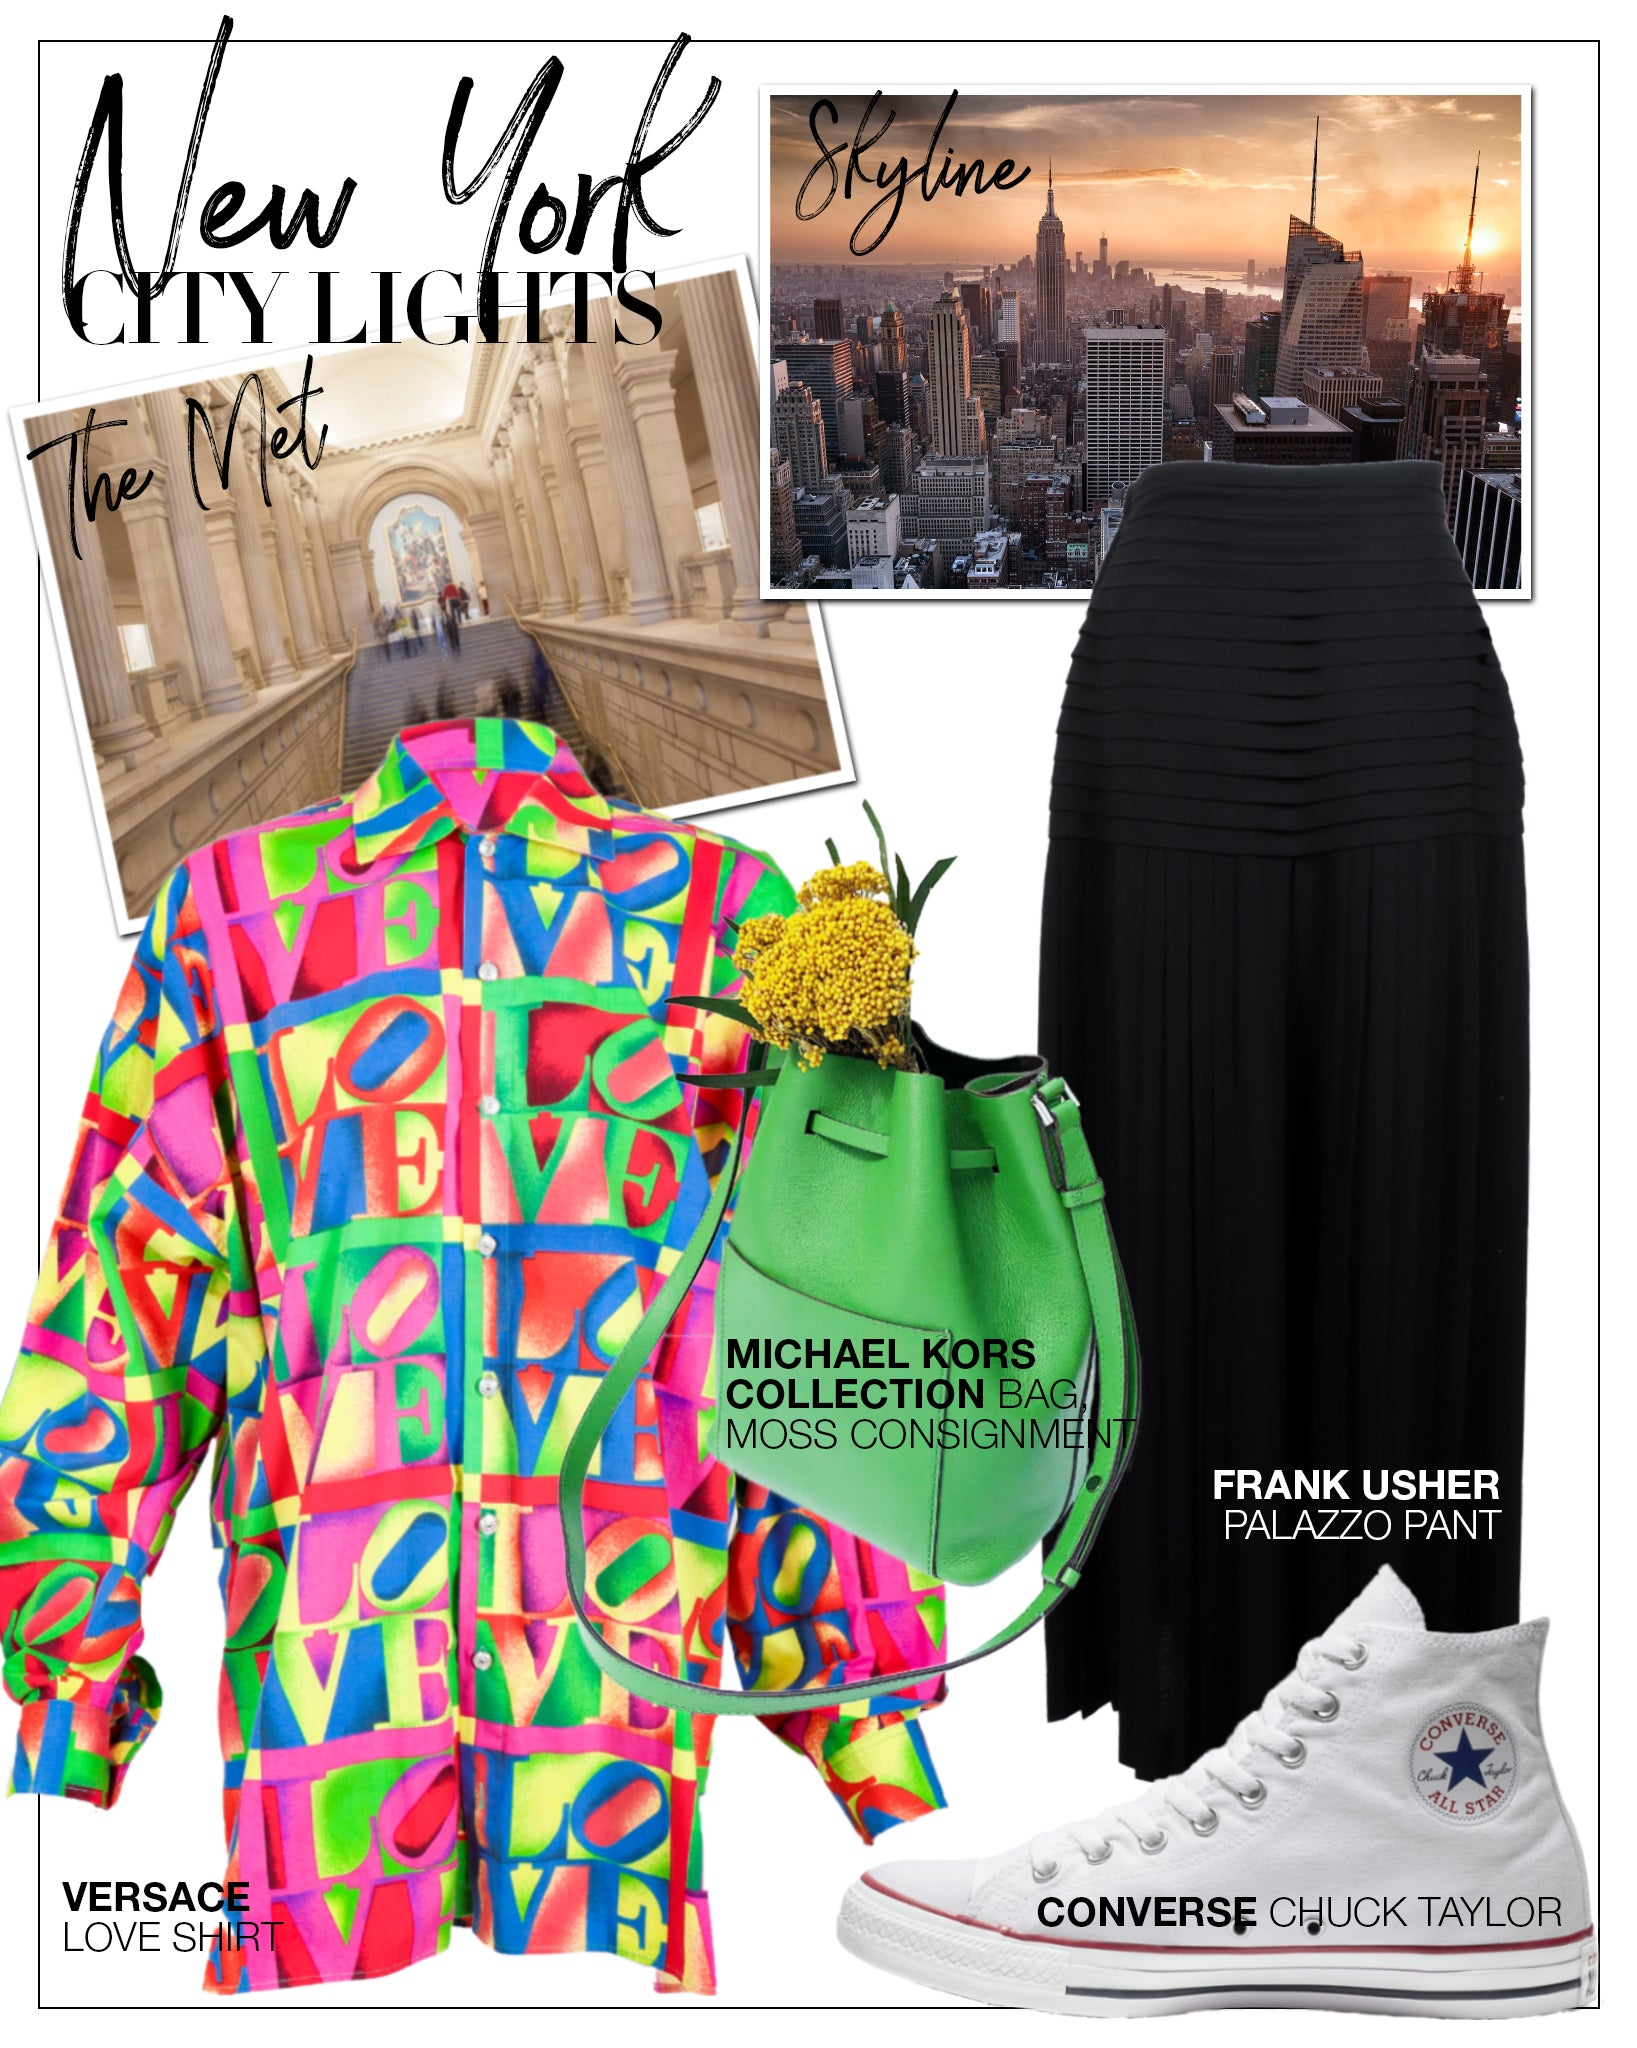 Recess DressCode Escapism Covid Quarantine Vacation Dreams New York City Lights Versace Love Shirt